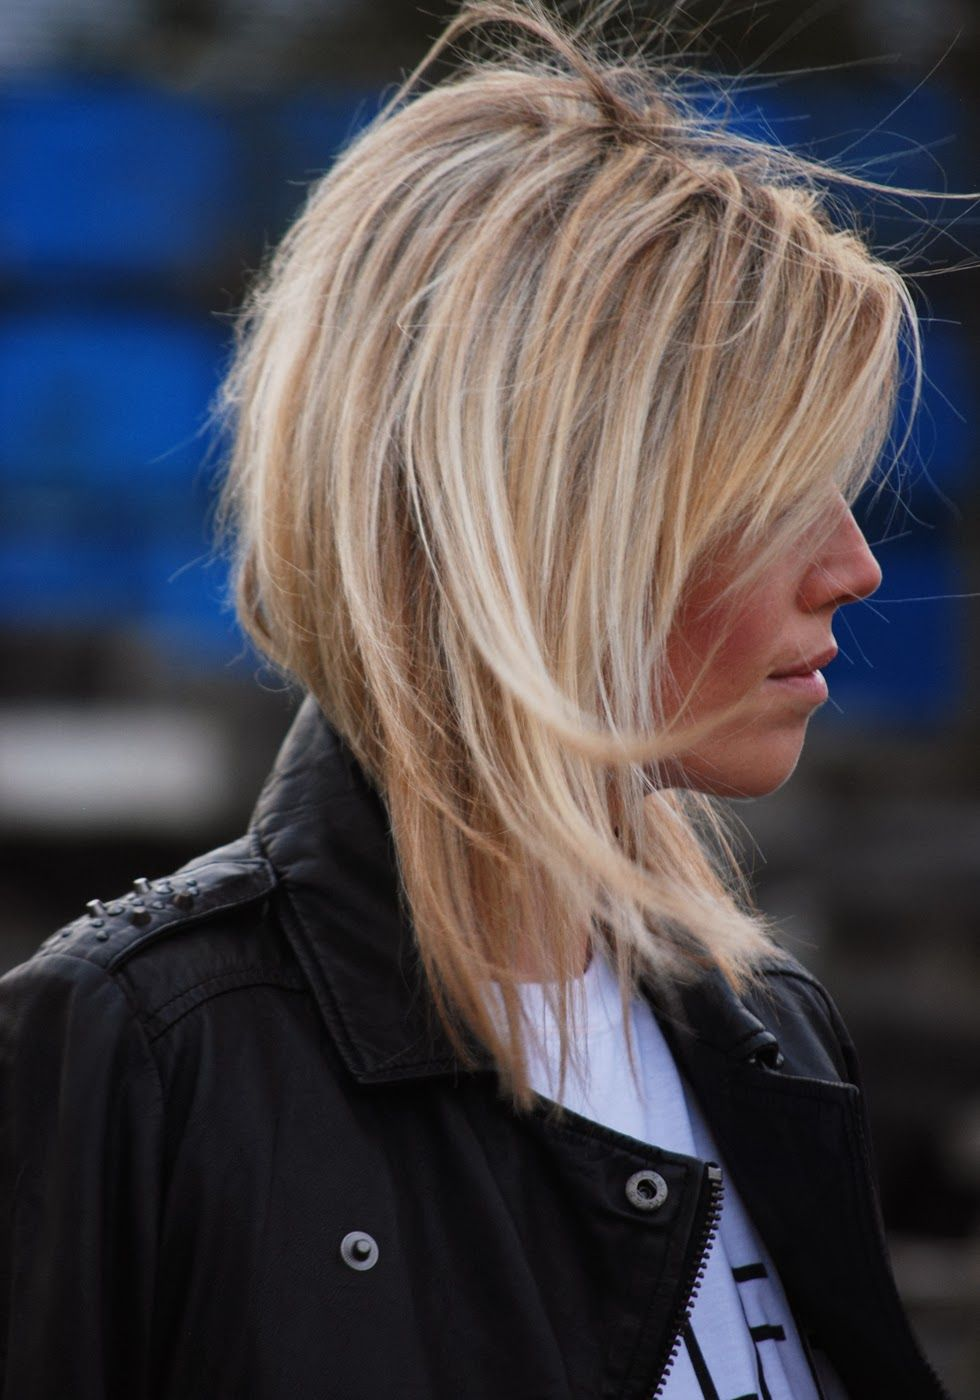 Mirror of fashion outfit leather layering summer haircuts